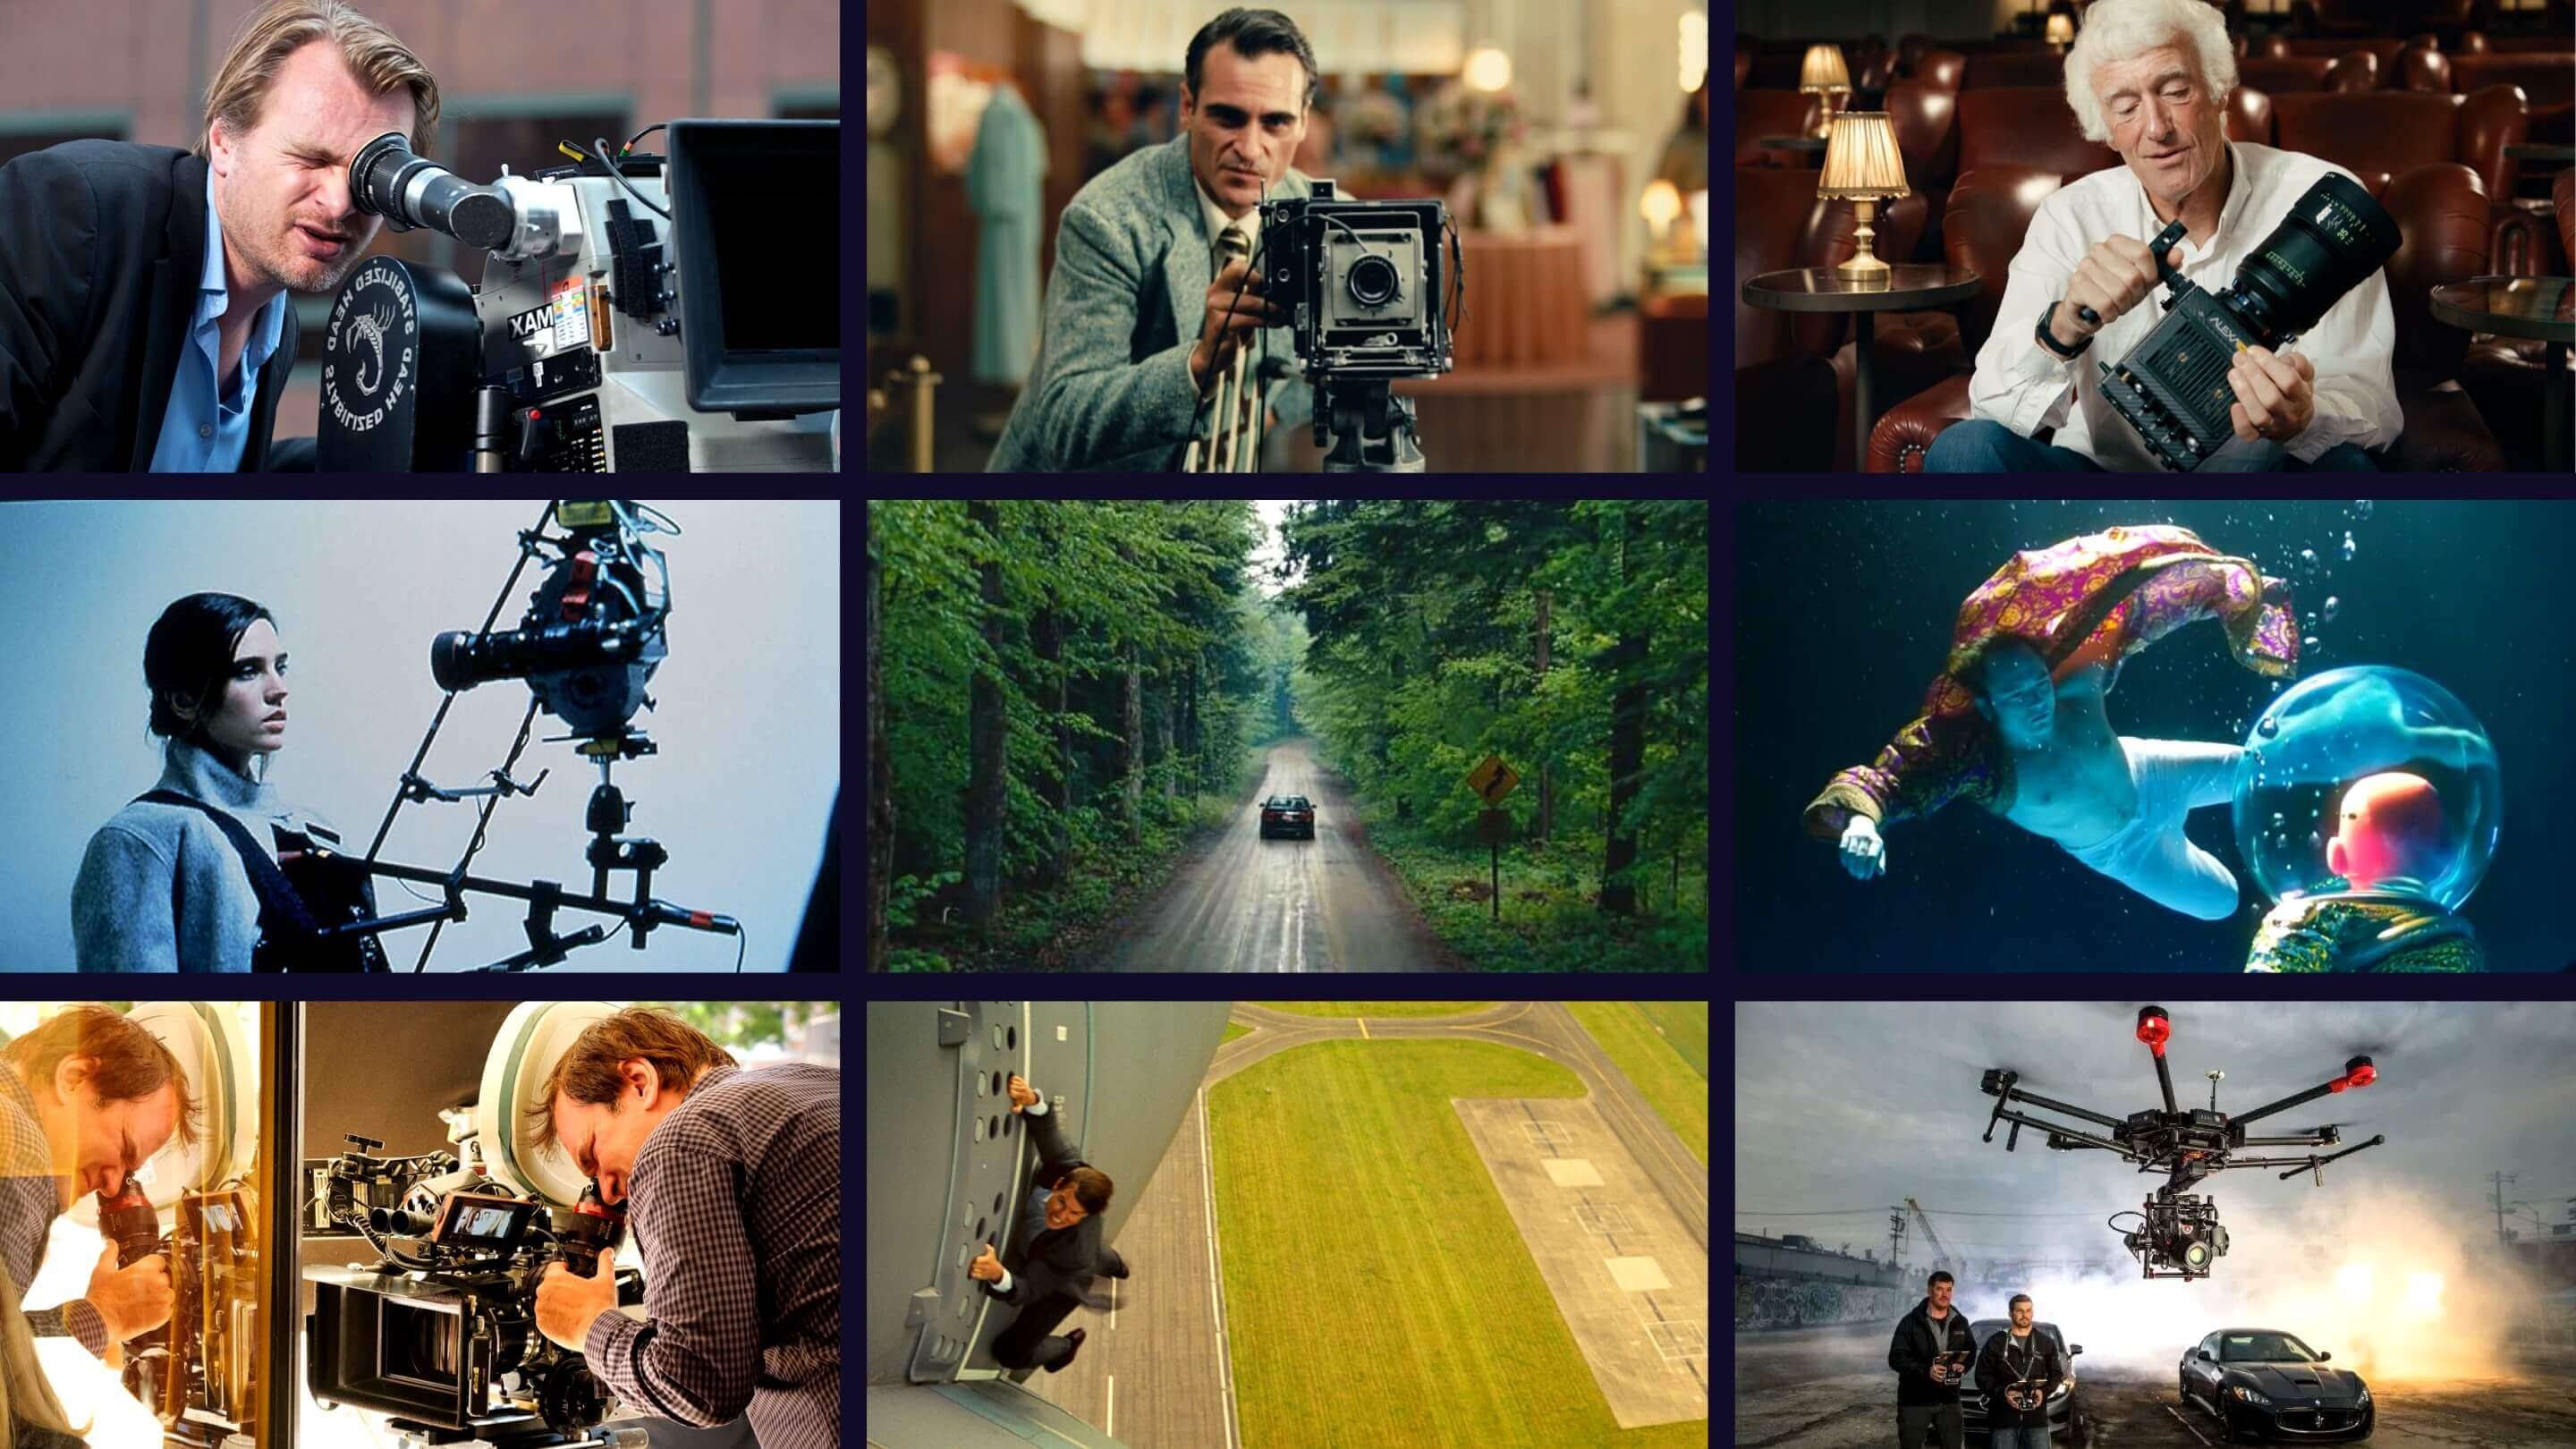 Ultimate Guide to Camera Gear - Every Type of Camera Rig and Camera Equipment Explained